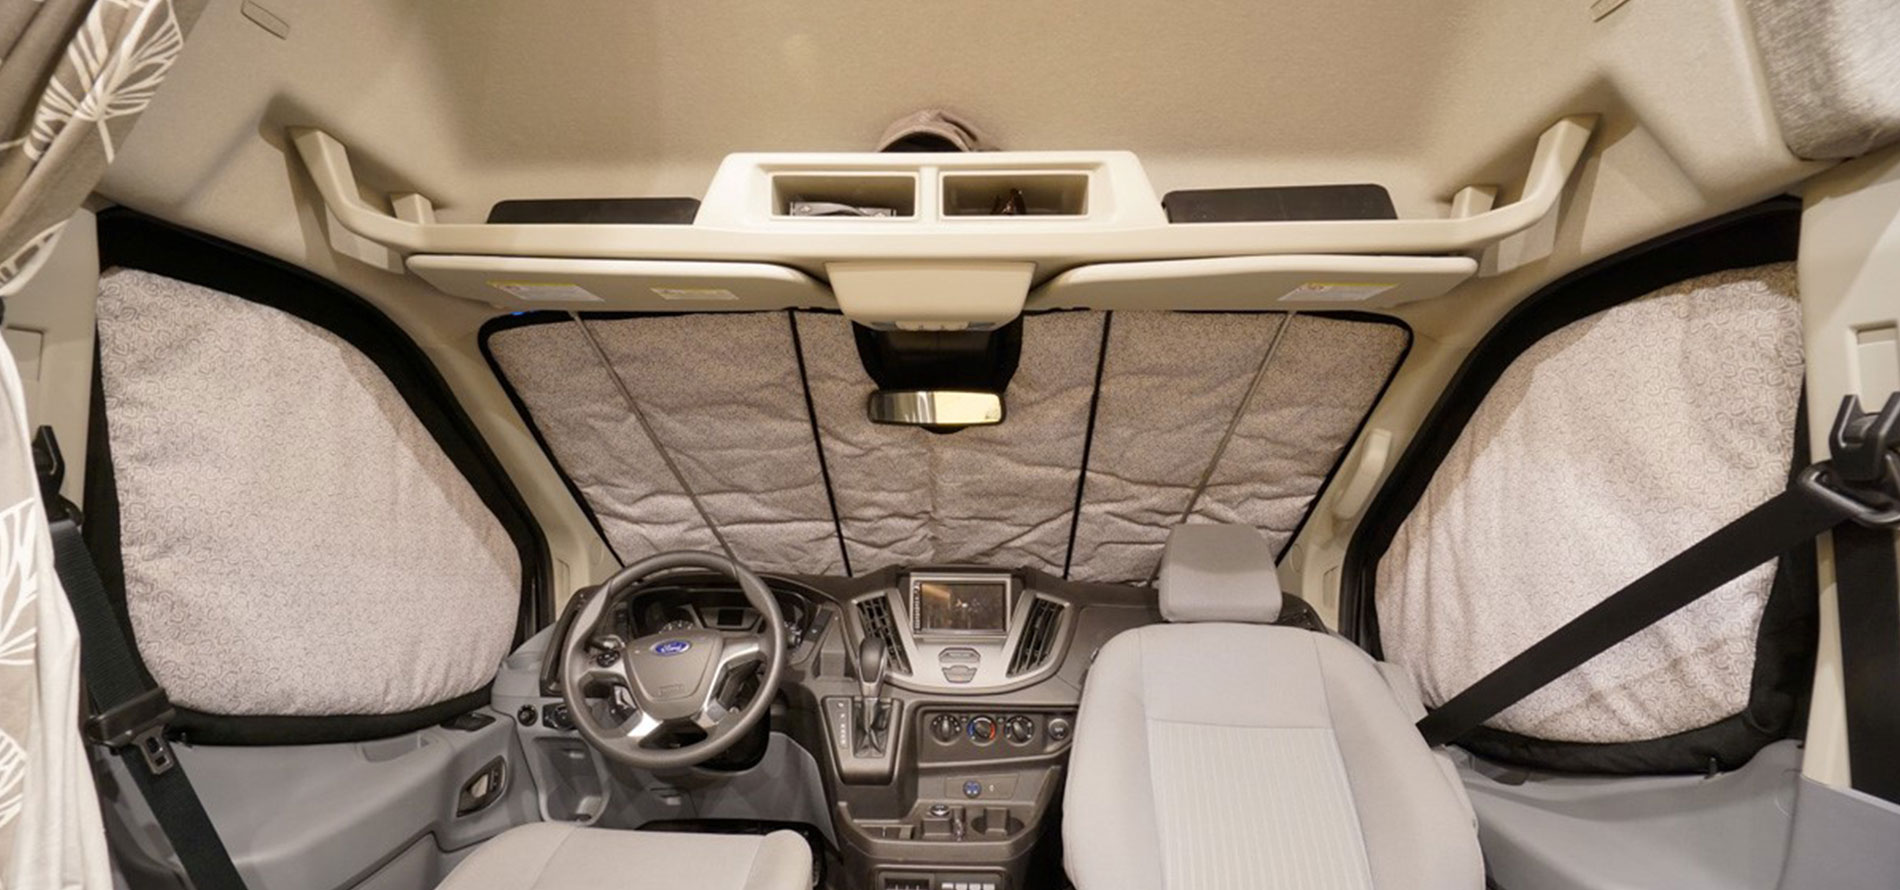 Insulated-Window-Covers-DIY-Van-Conversion-Heading-1920px